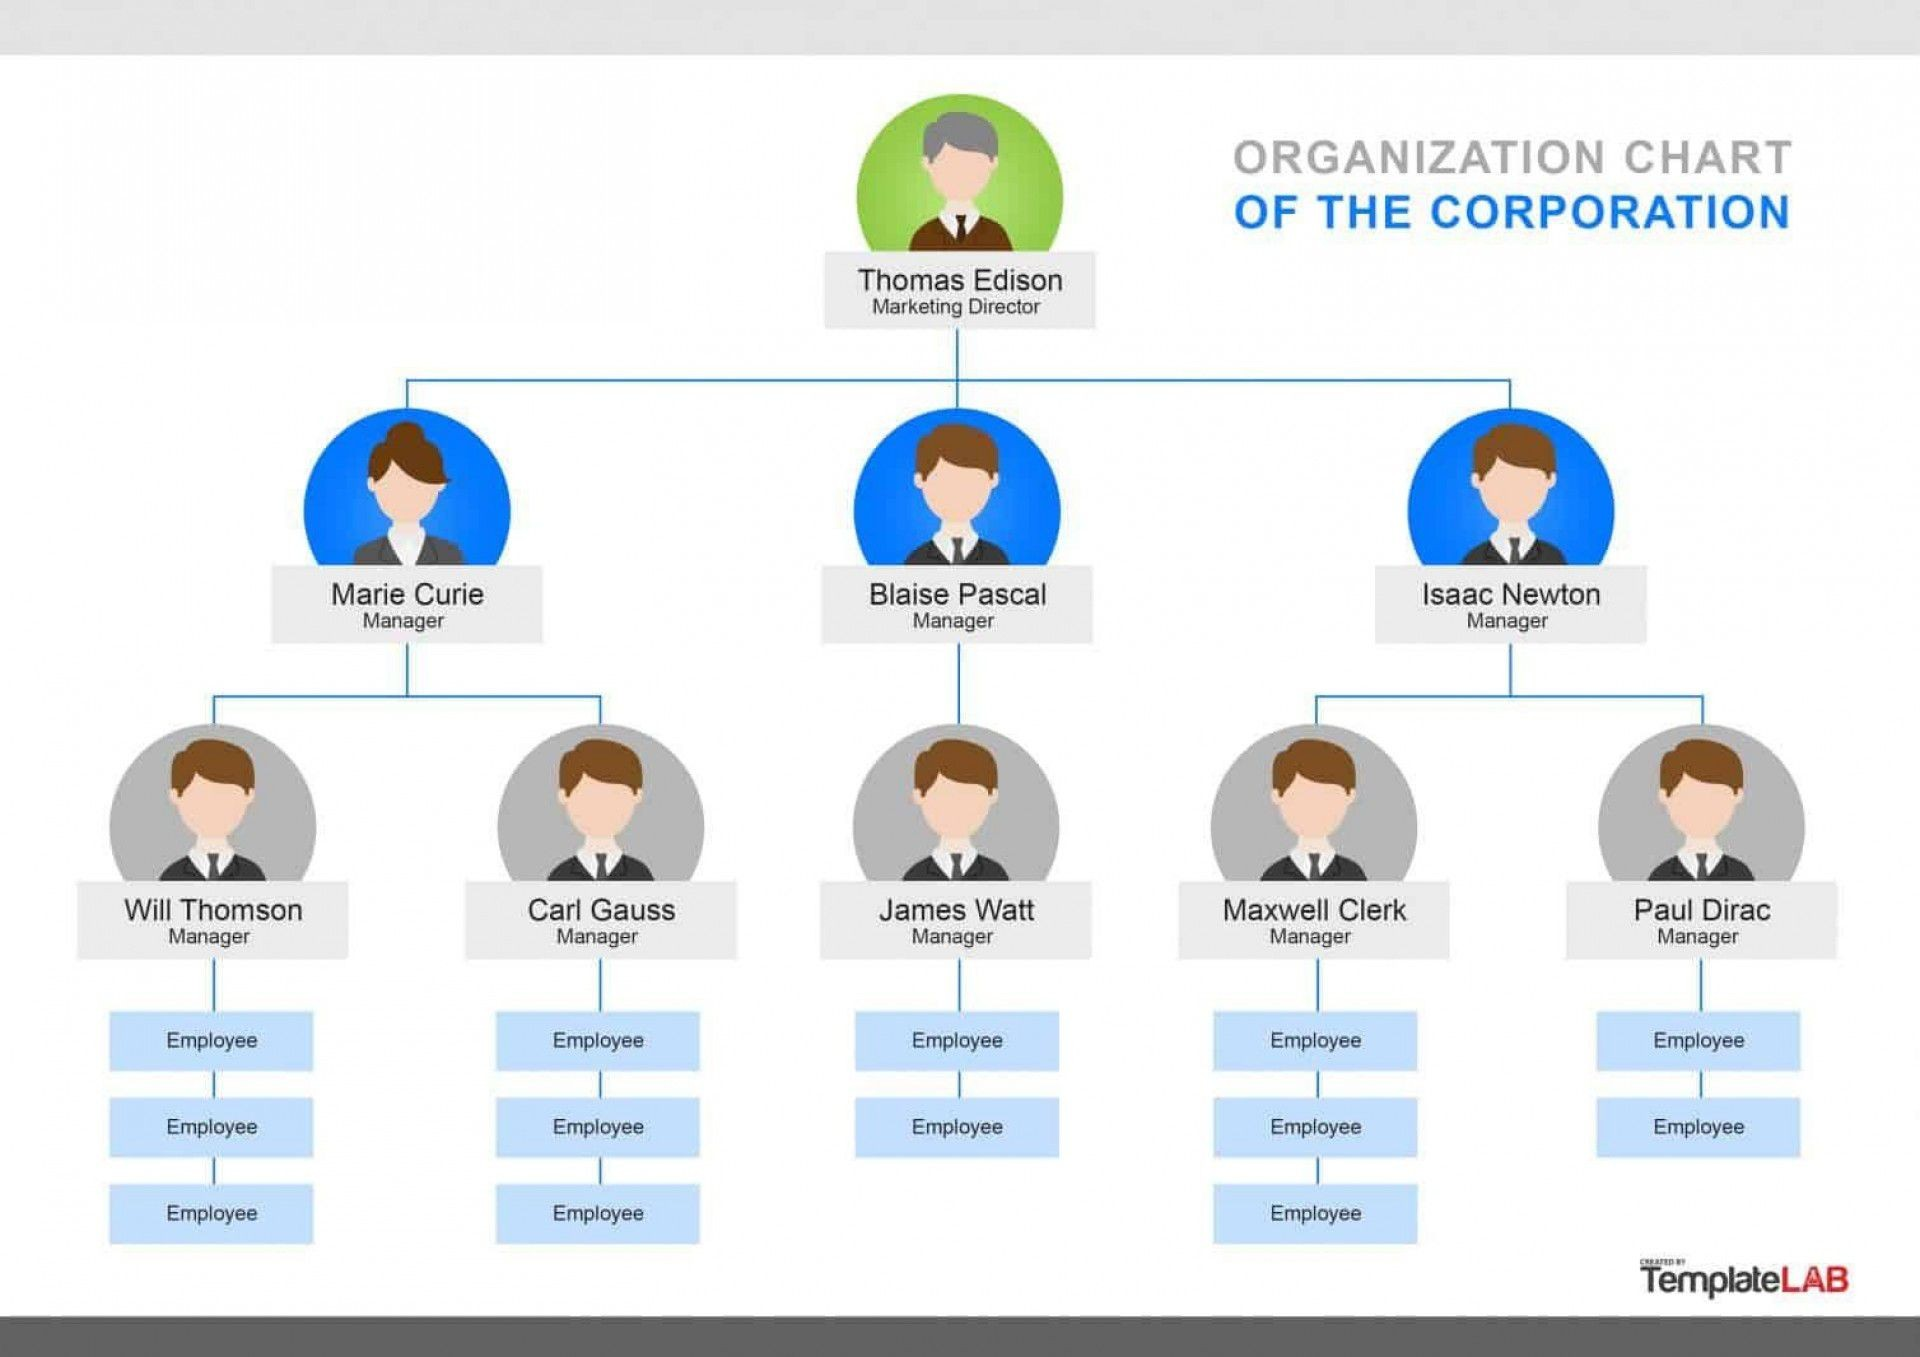 002 Exceptional Microsoft Office Organizational Chart Template 2010 Concept 1920